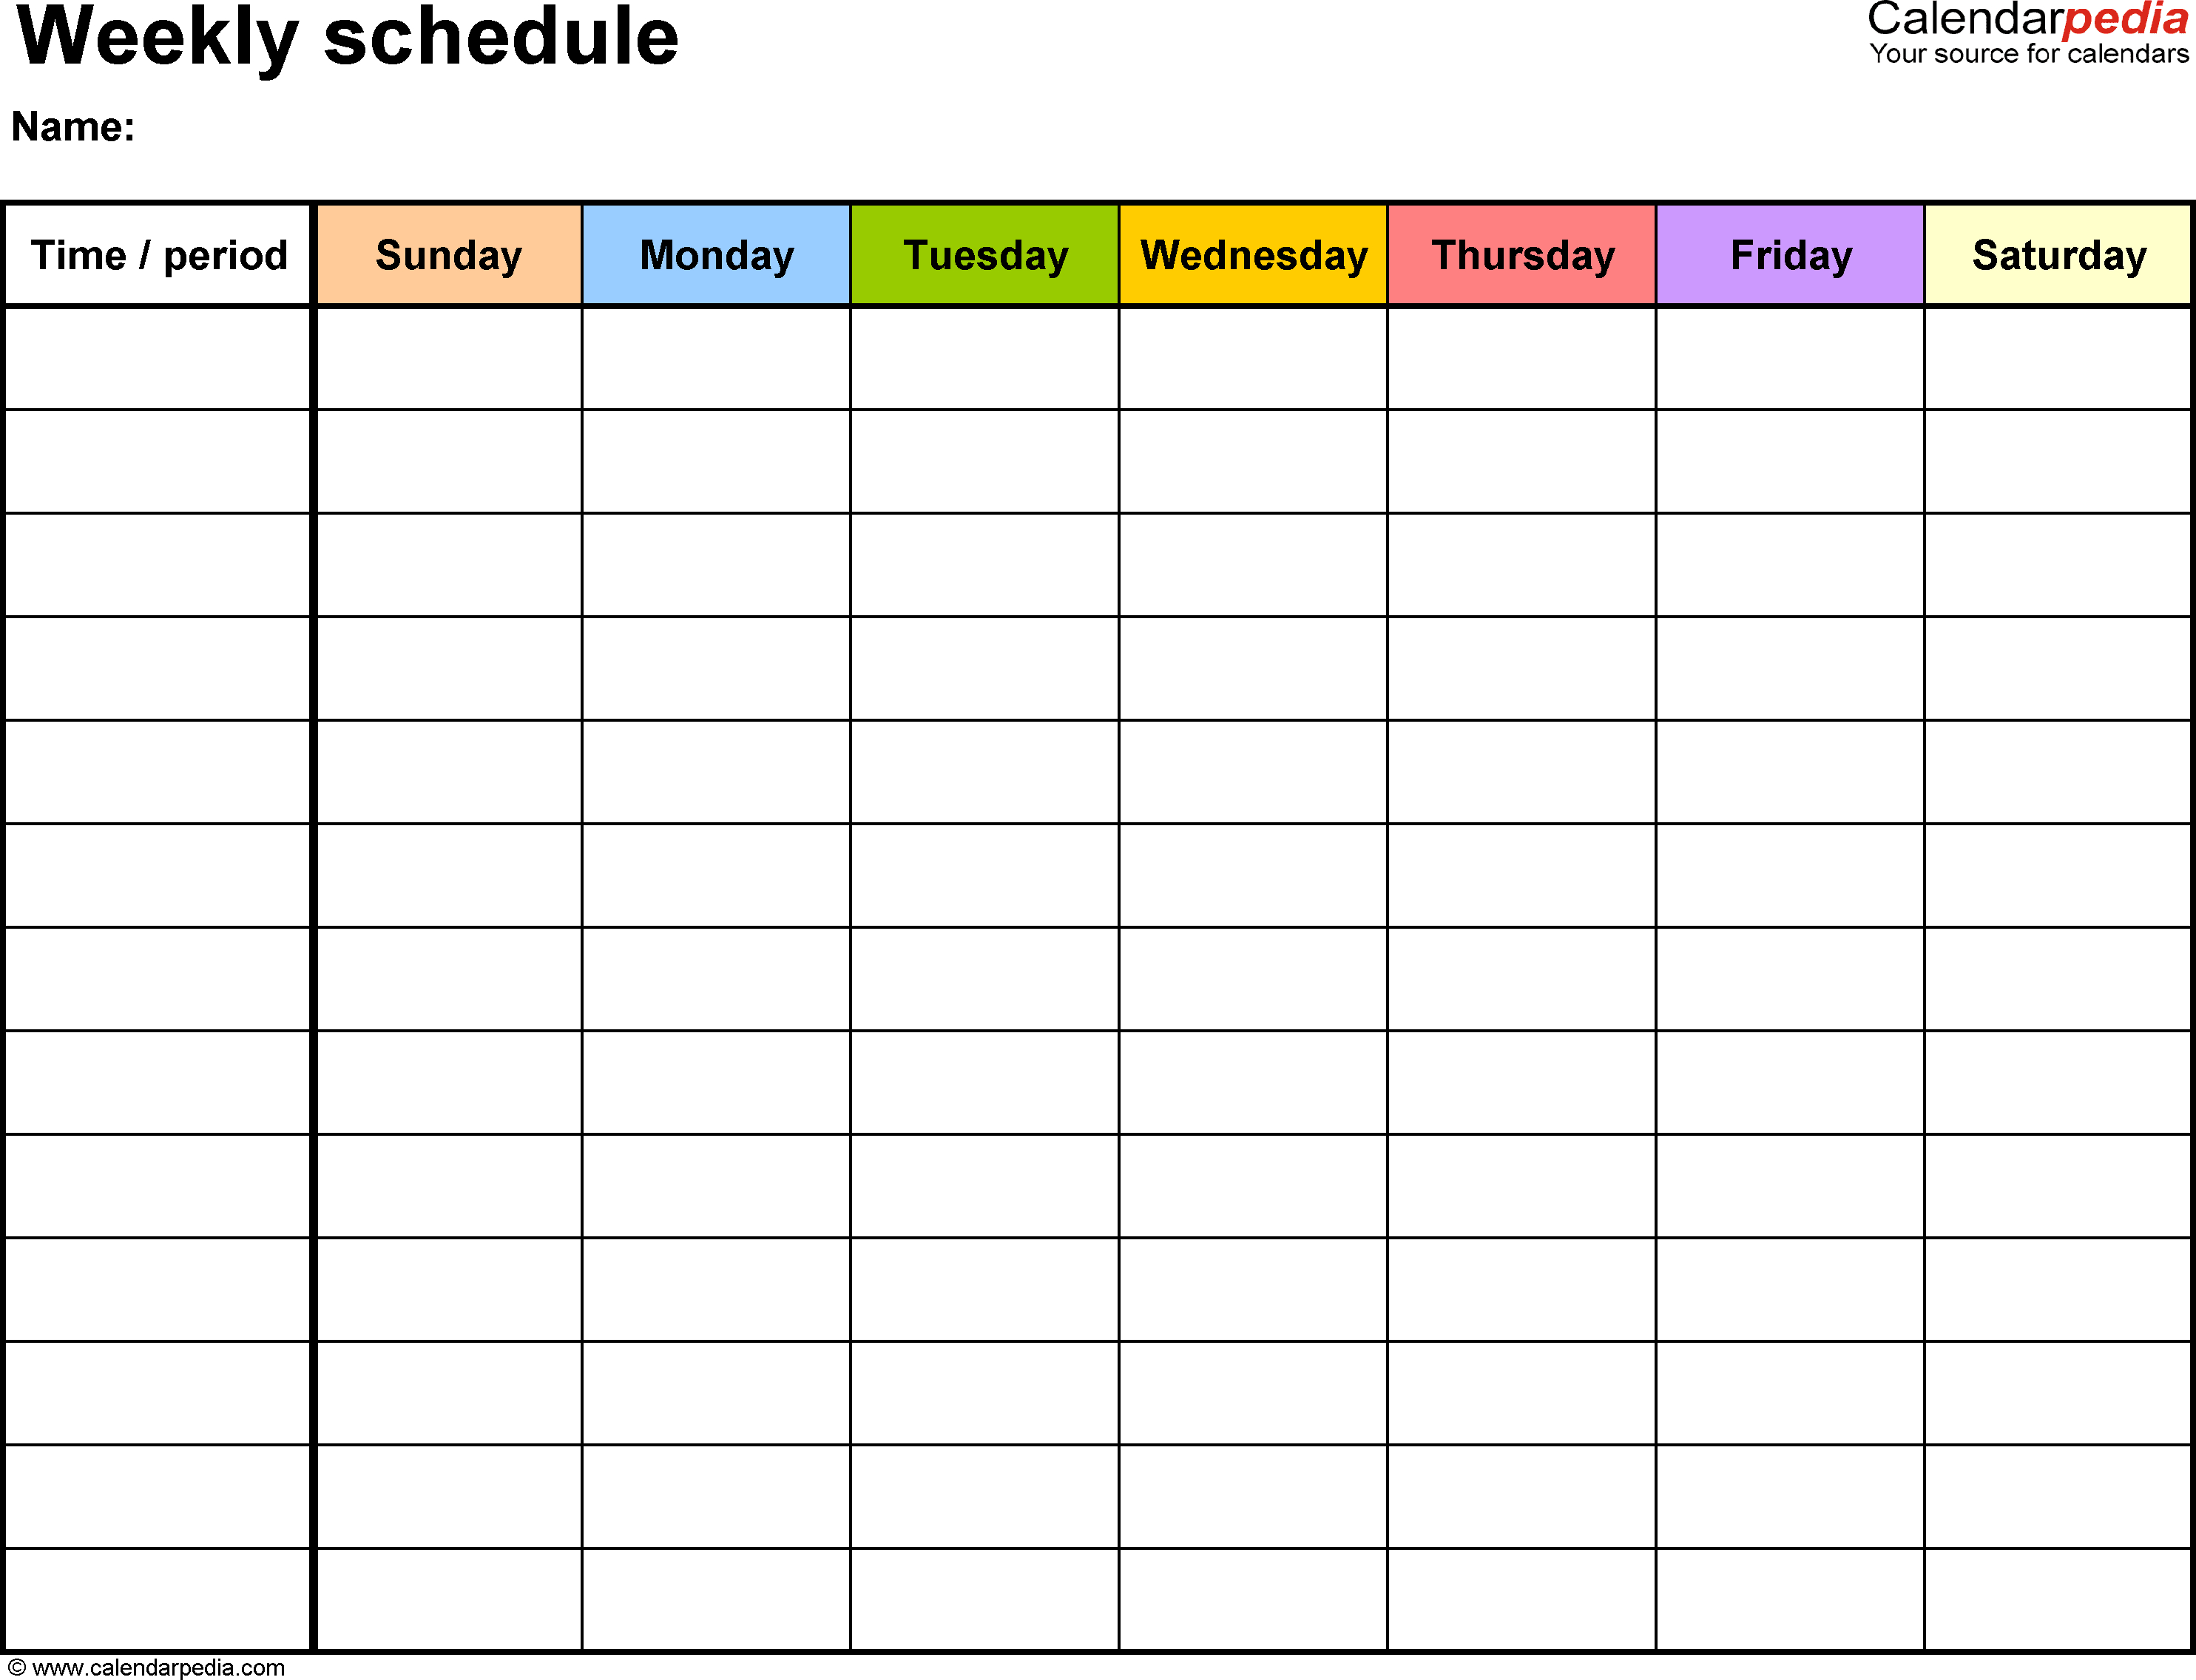 Free Weekly Schedule Templates For Word - 18 Templates pertaining to Blank 30 Day Month Calendar